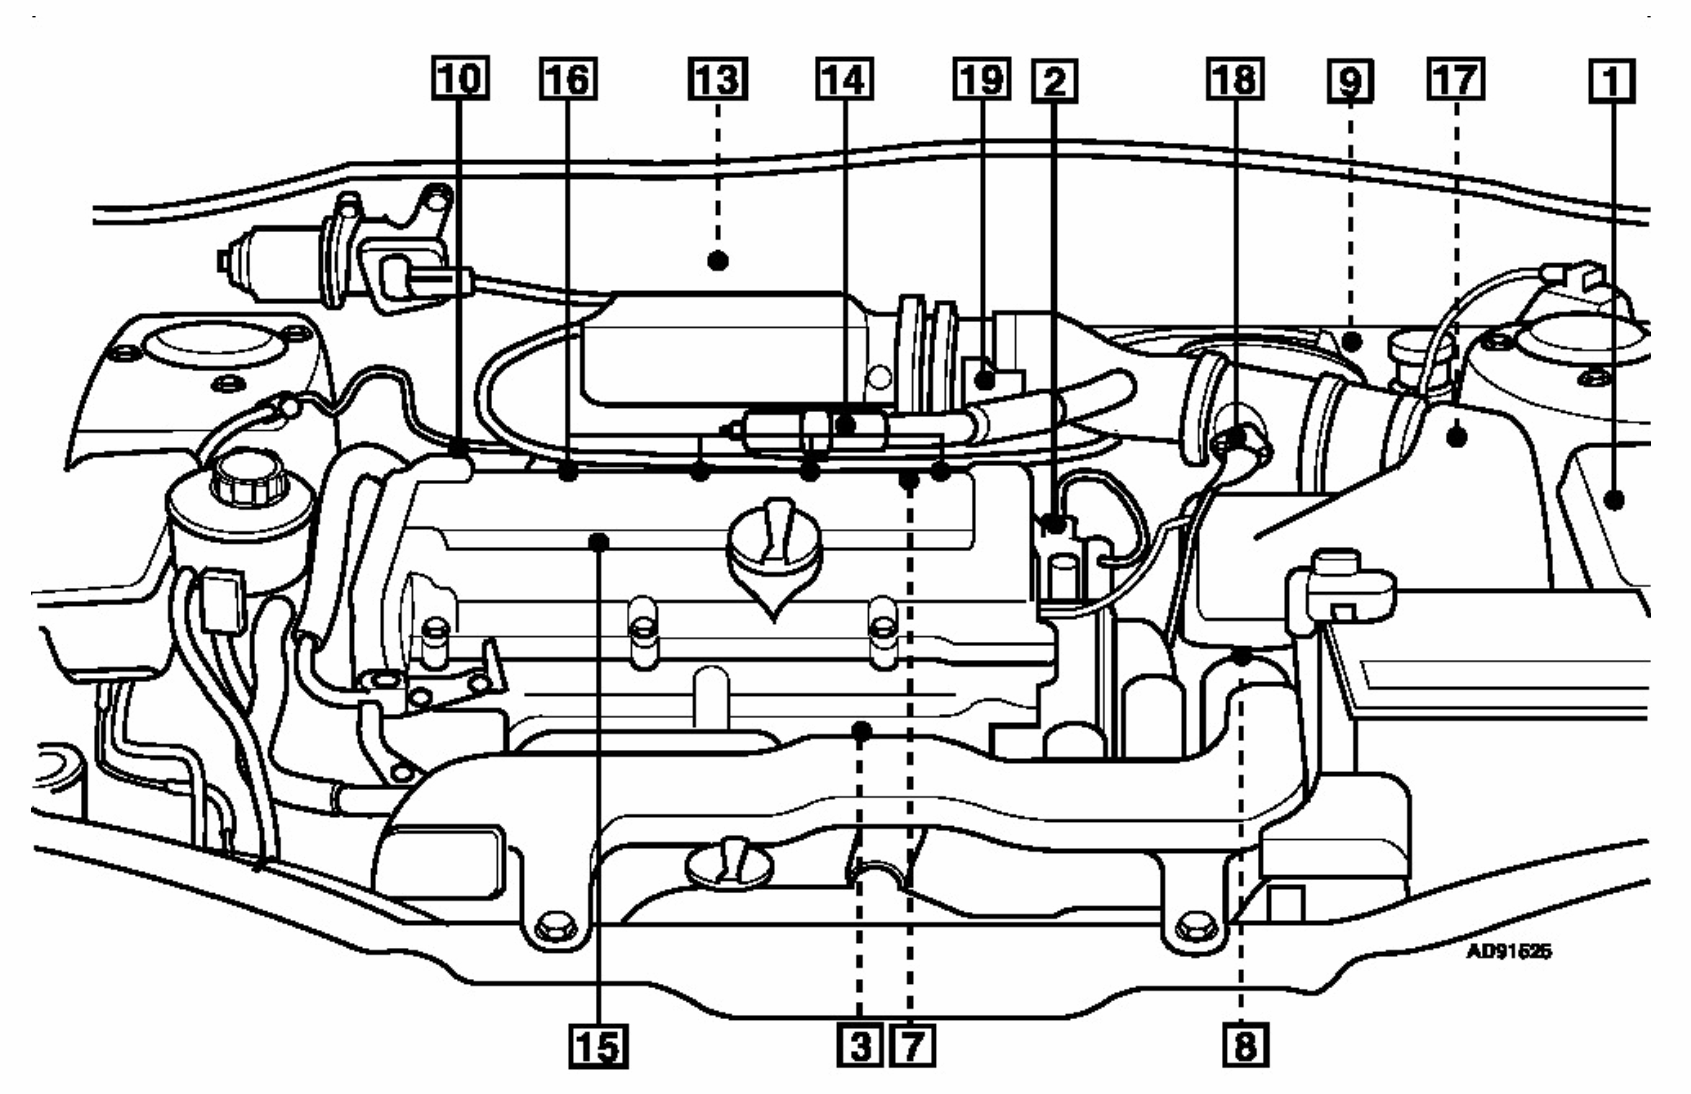 Can U Tell Me Were The Crank Angle Sencer Is Located On A